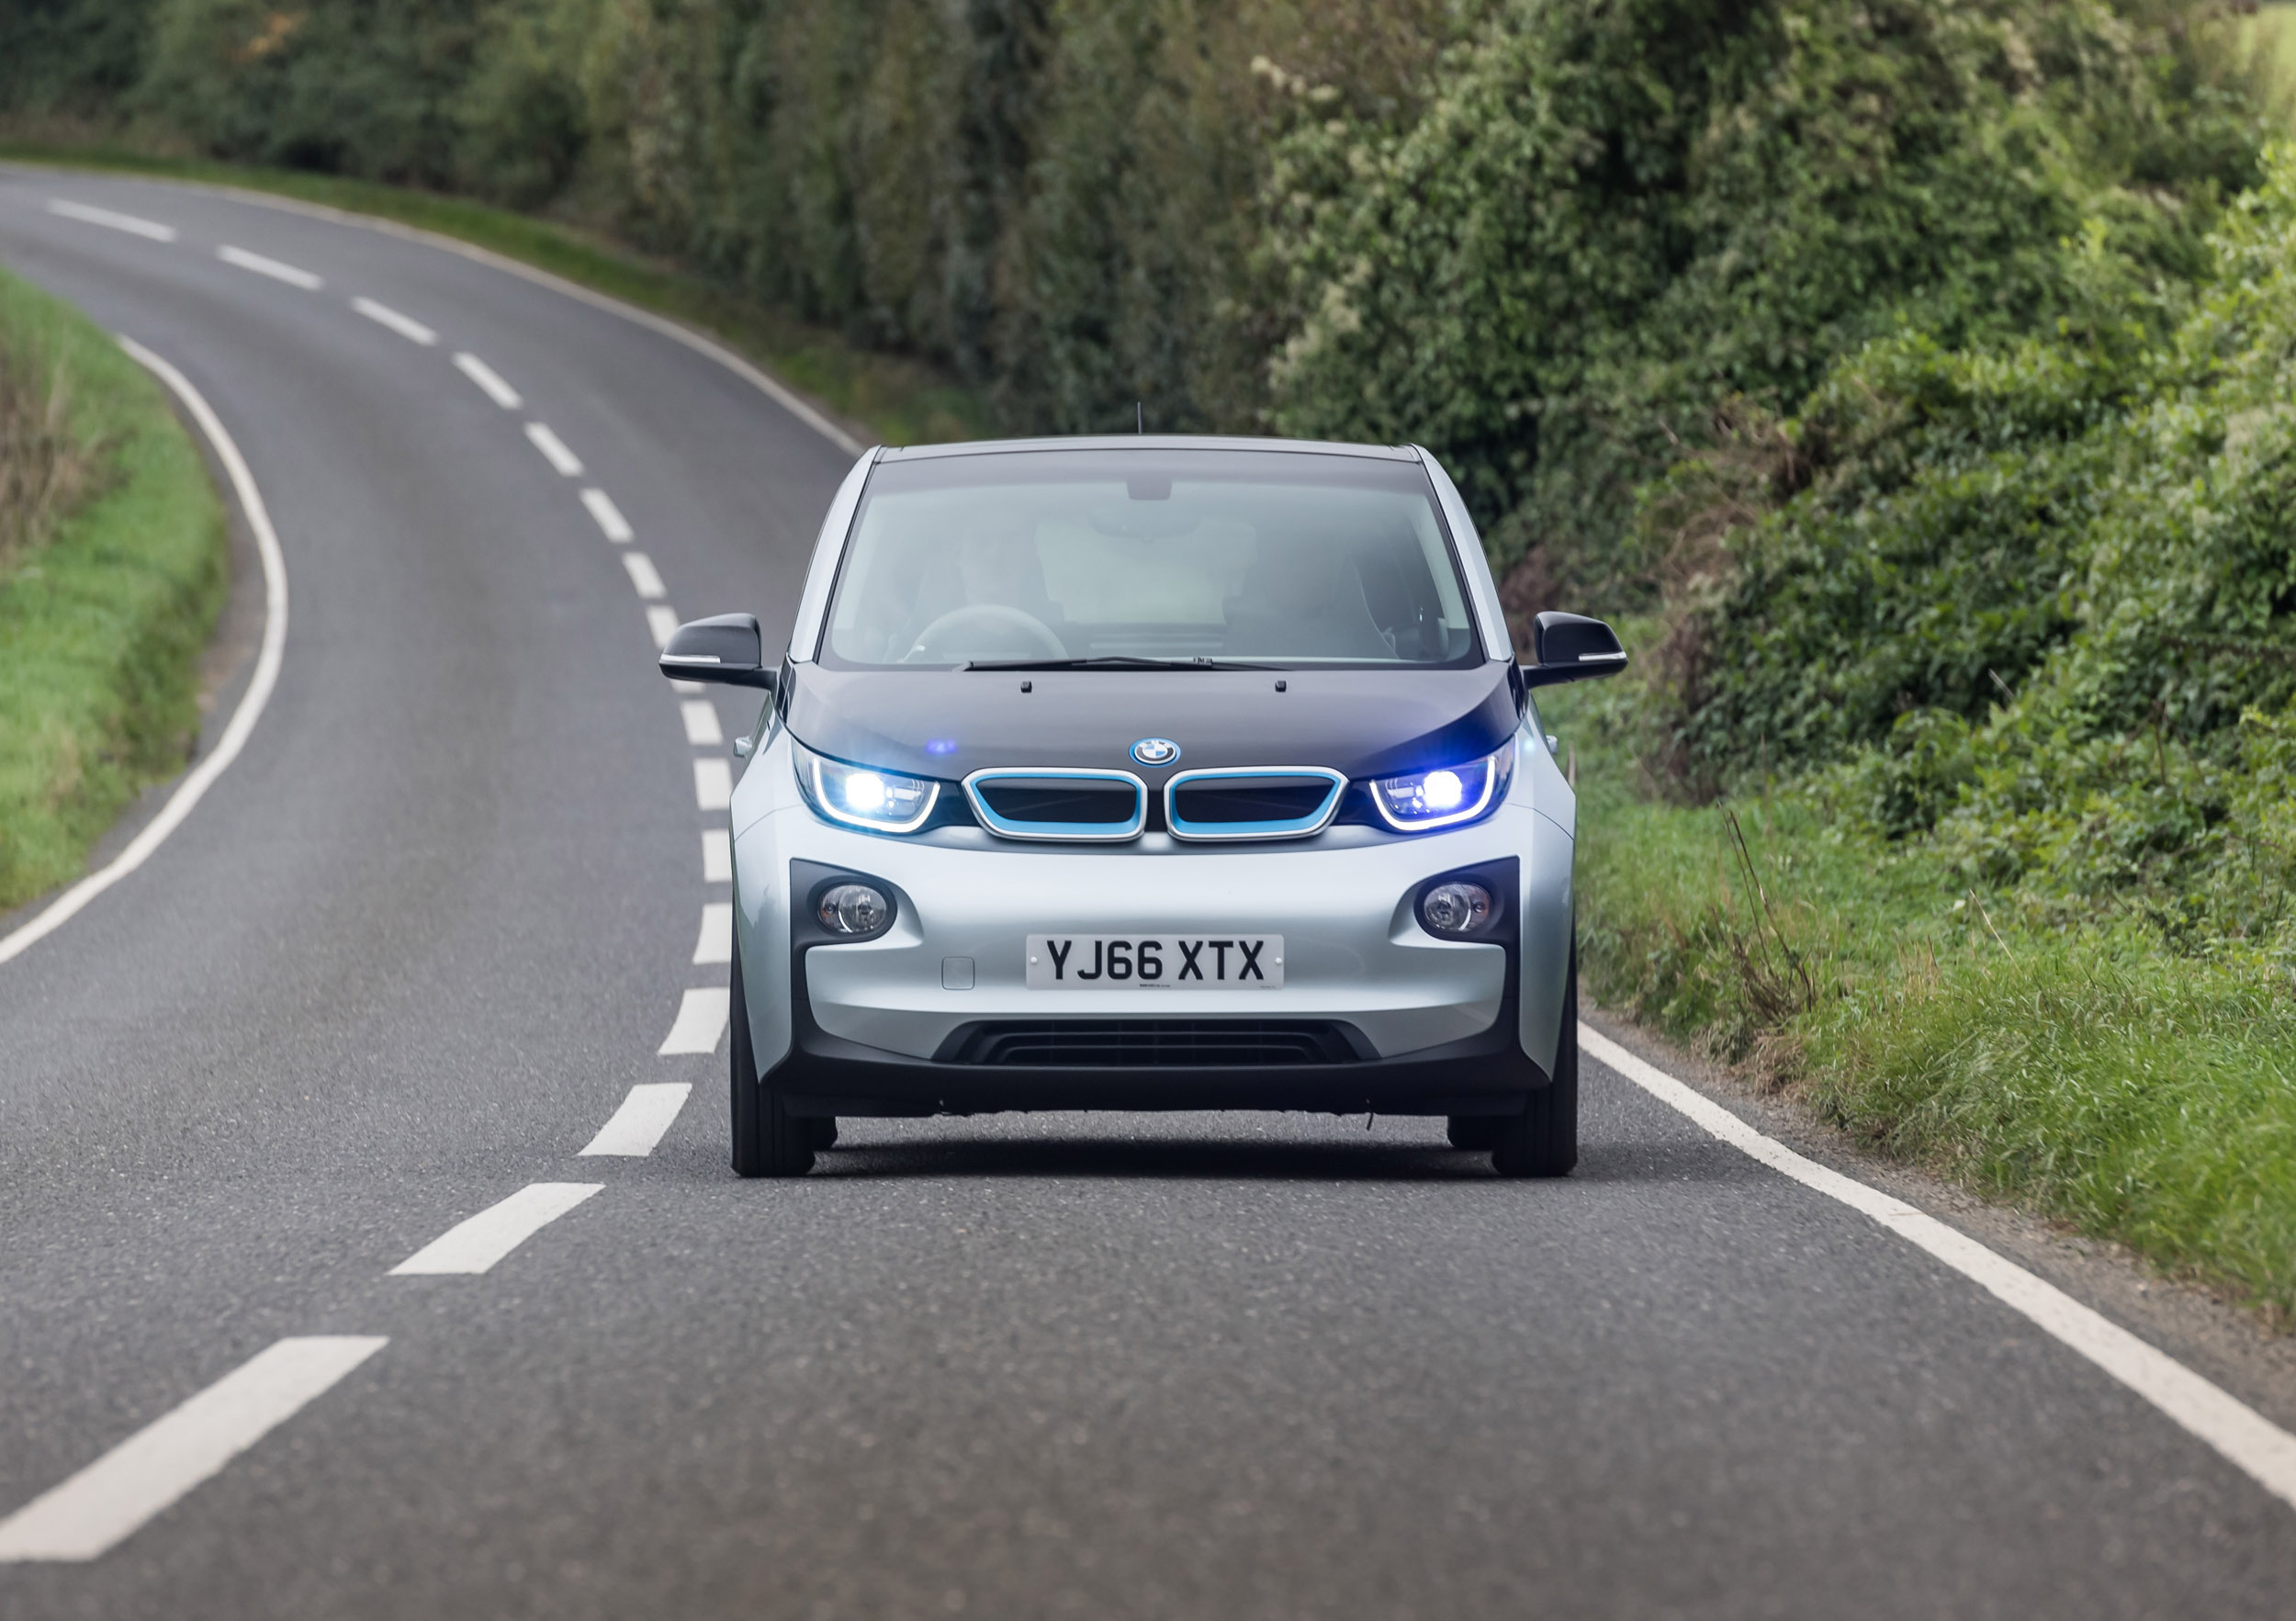 0 60 Times Bmw >> Bmw I3 Performance And 0 60 Time Evo